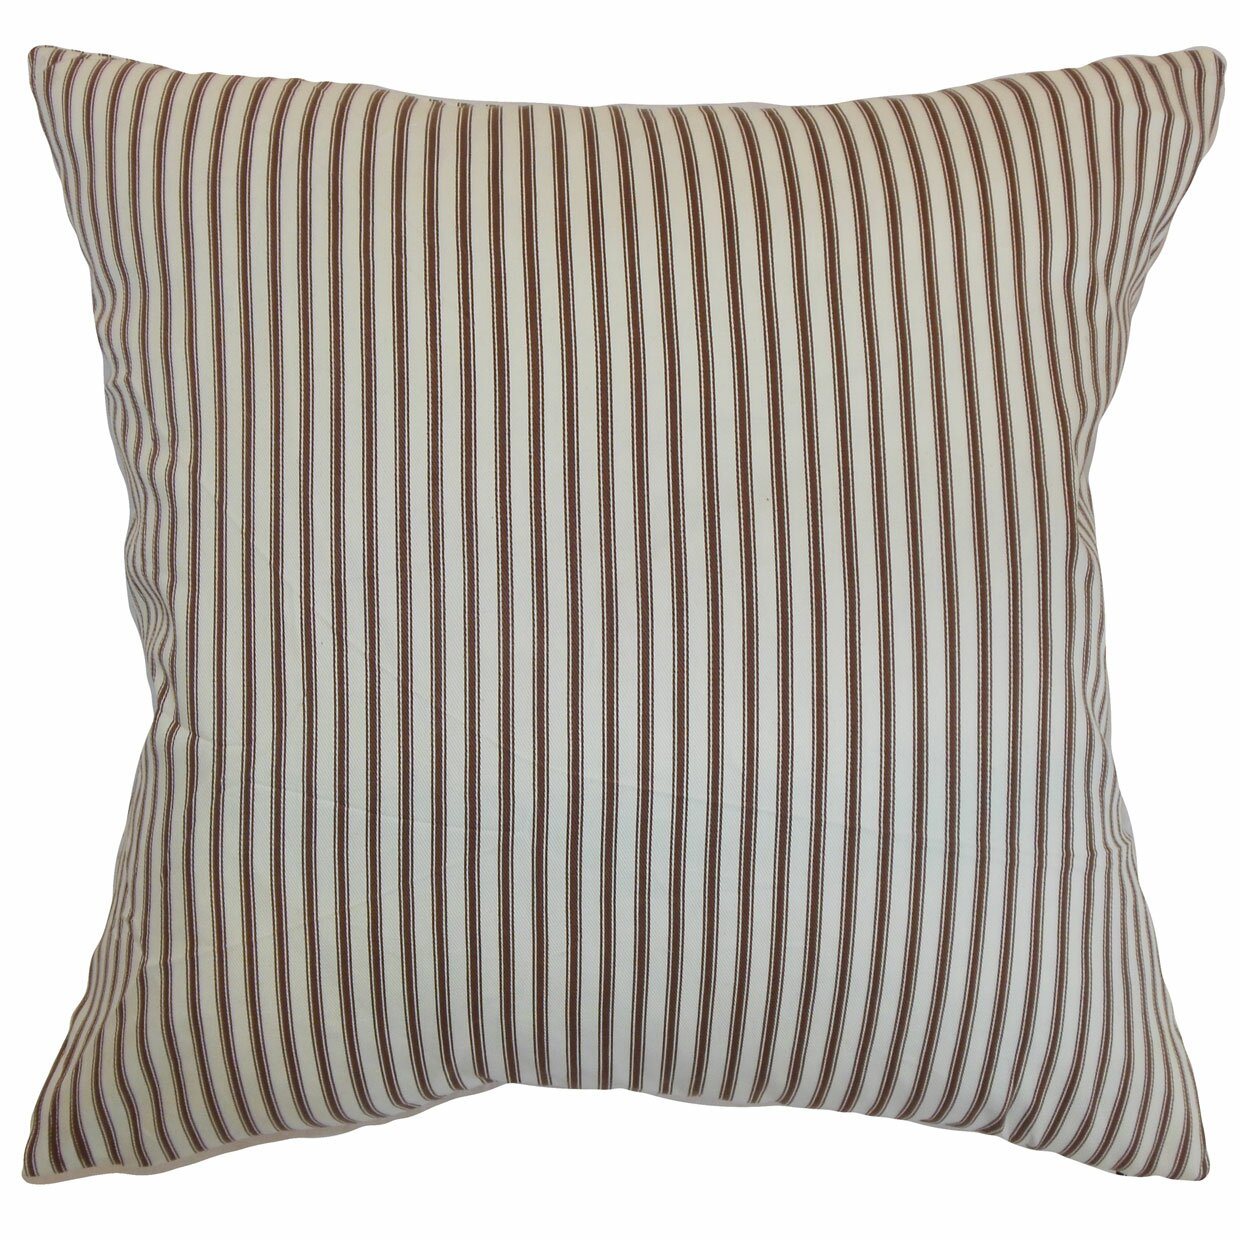 Wayfair Decorative Pillow Covers : The Pillow Collection Cushion Cover Wayfair UK